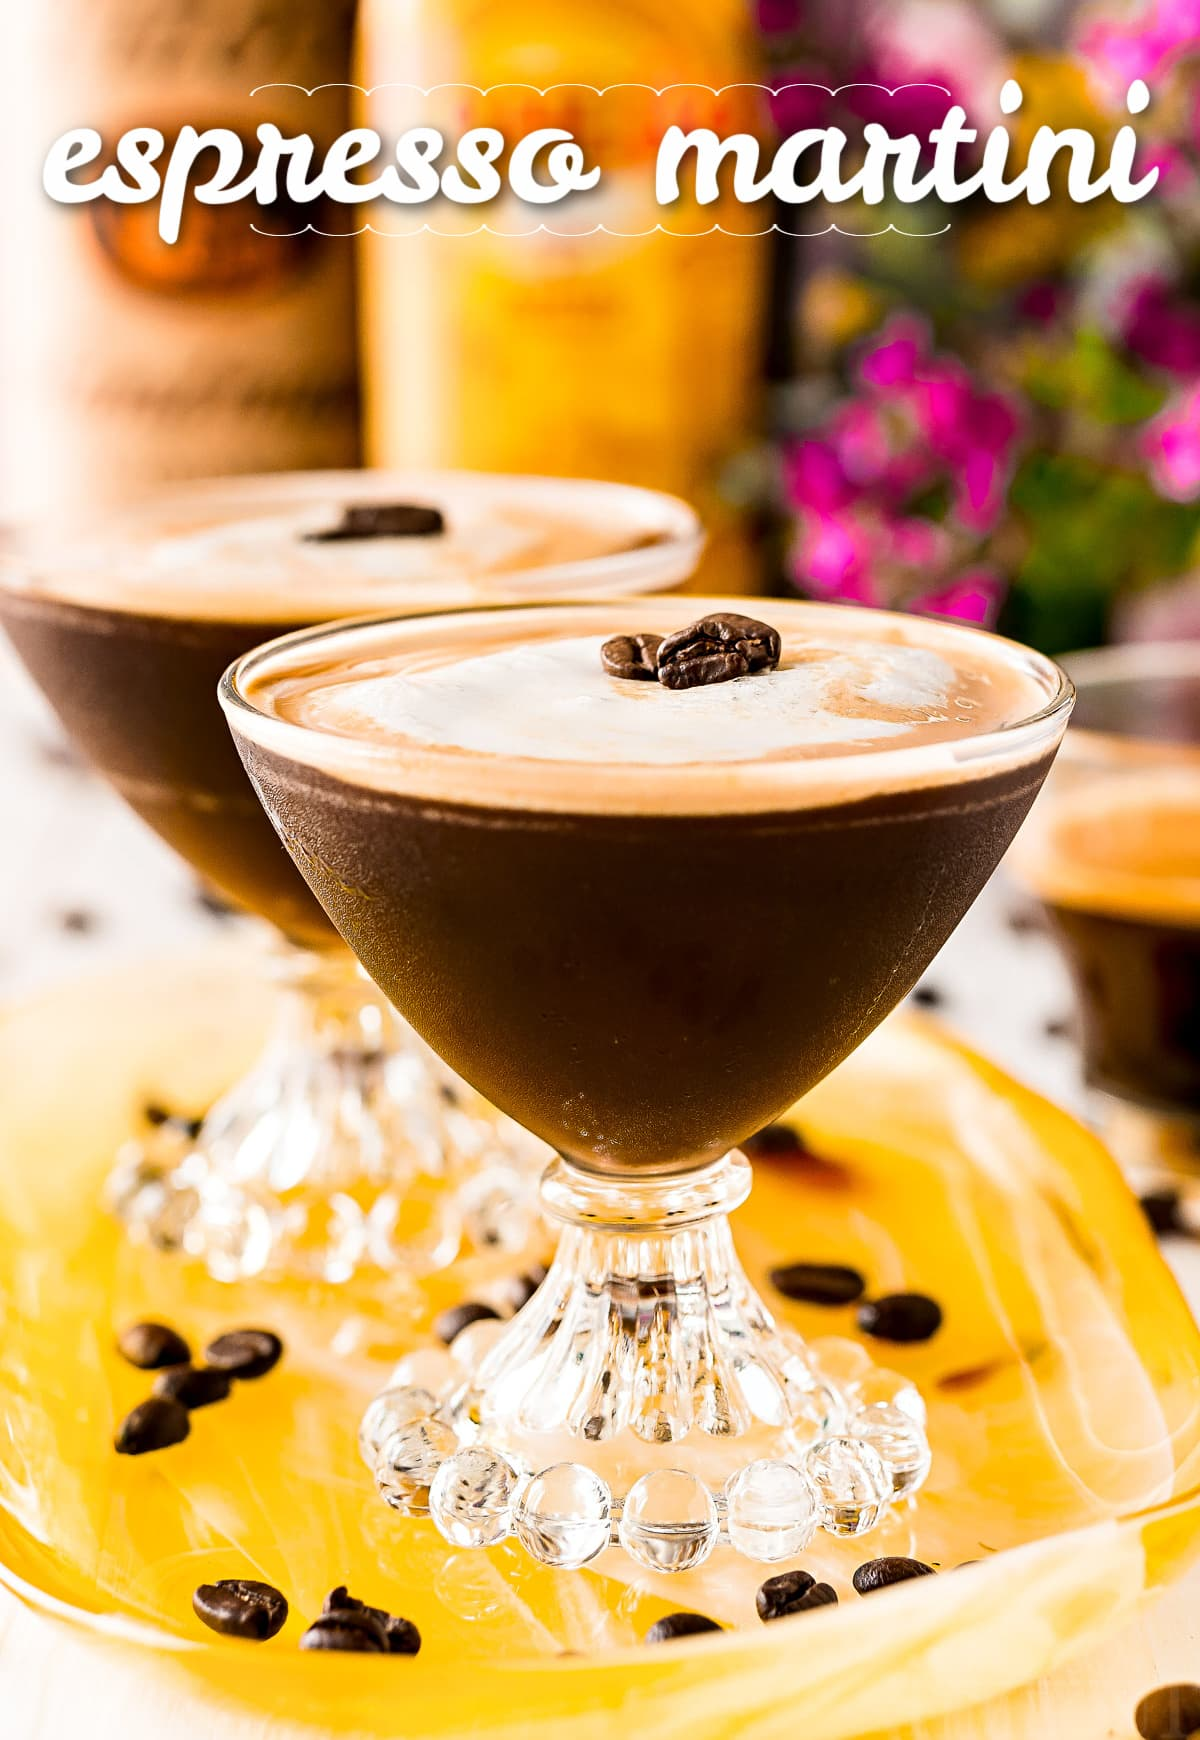 two espresso martini in fancy martini glass on yellow tray with title overlay at top of image and bottles in background